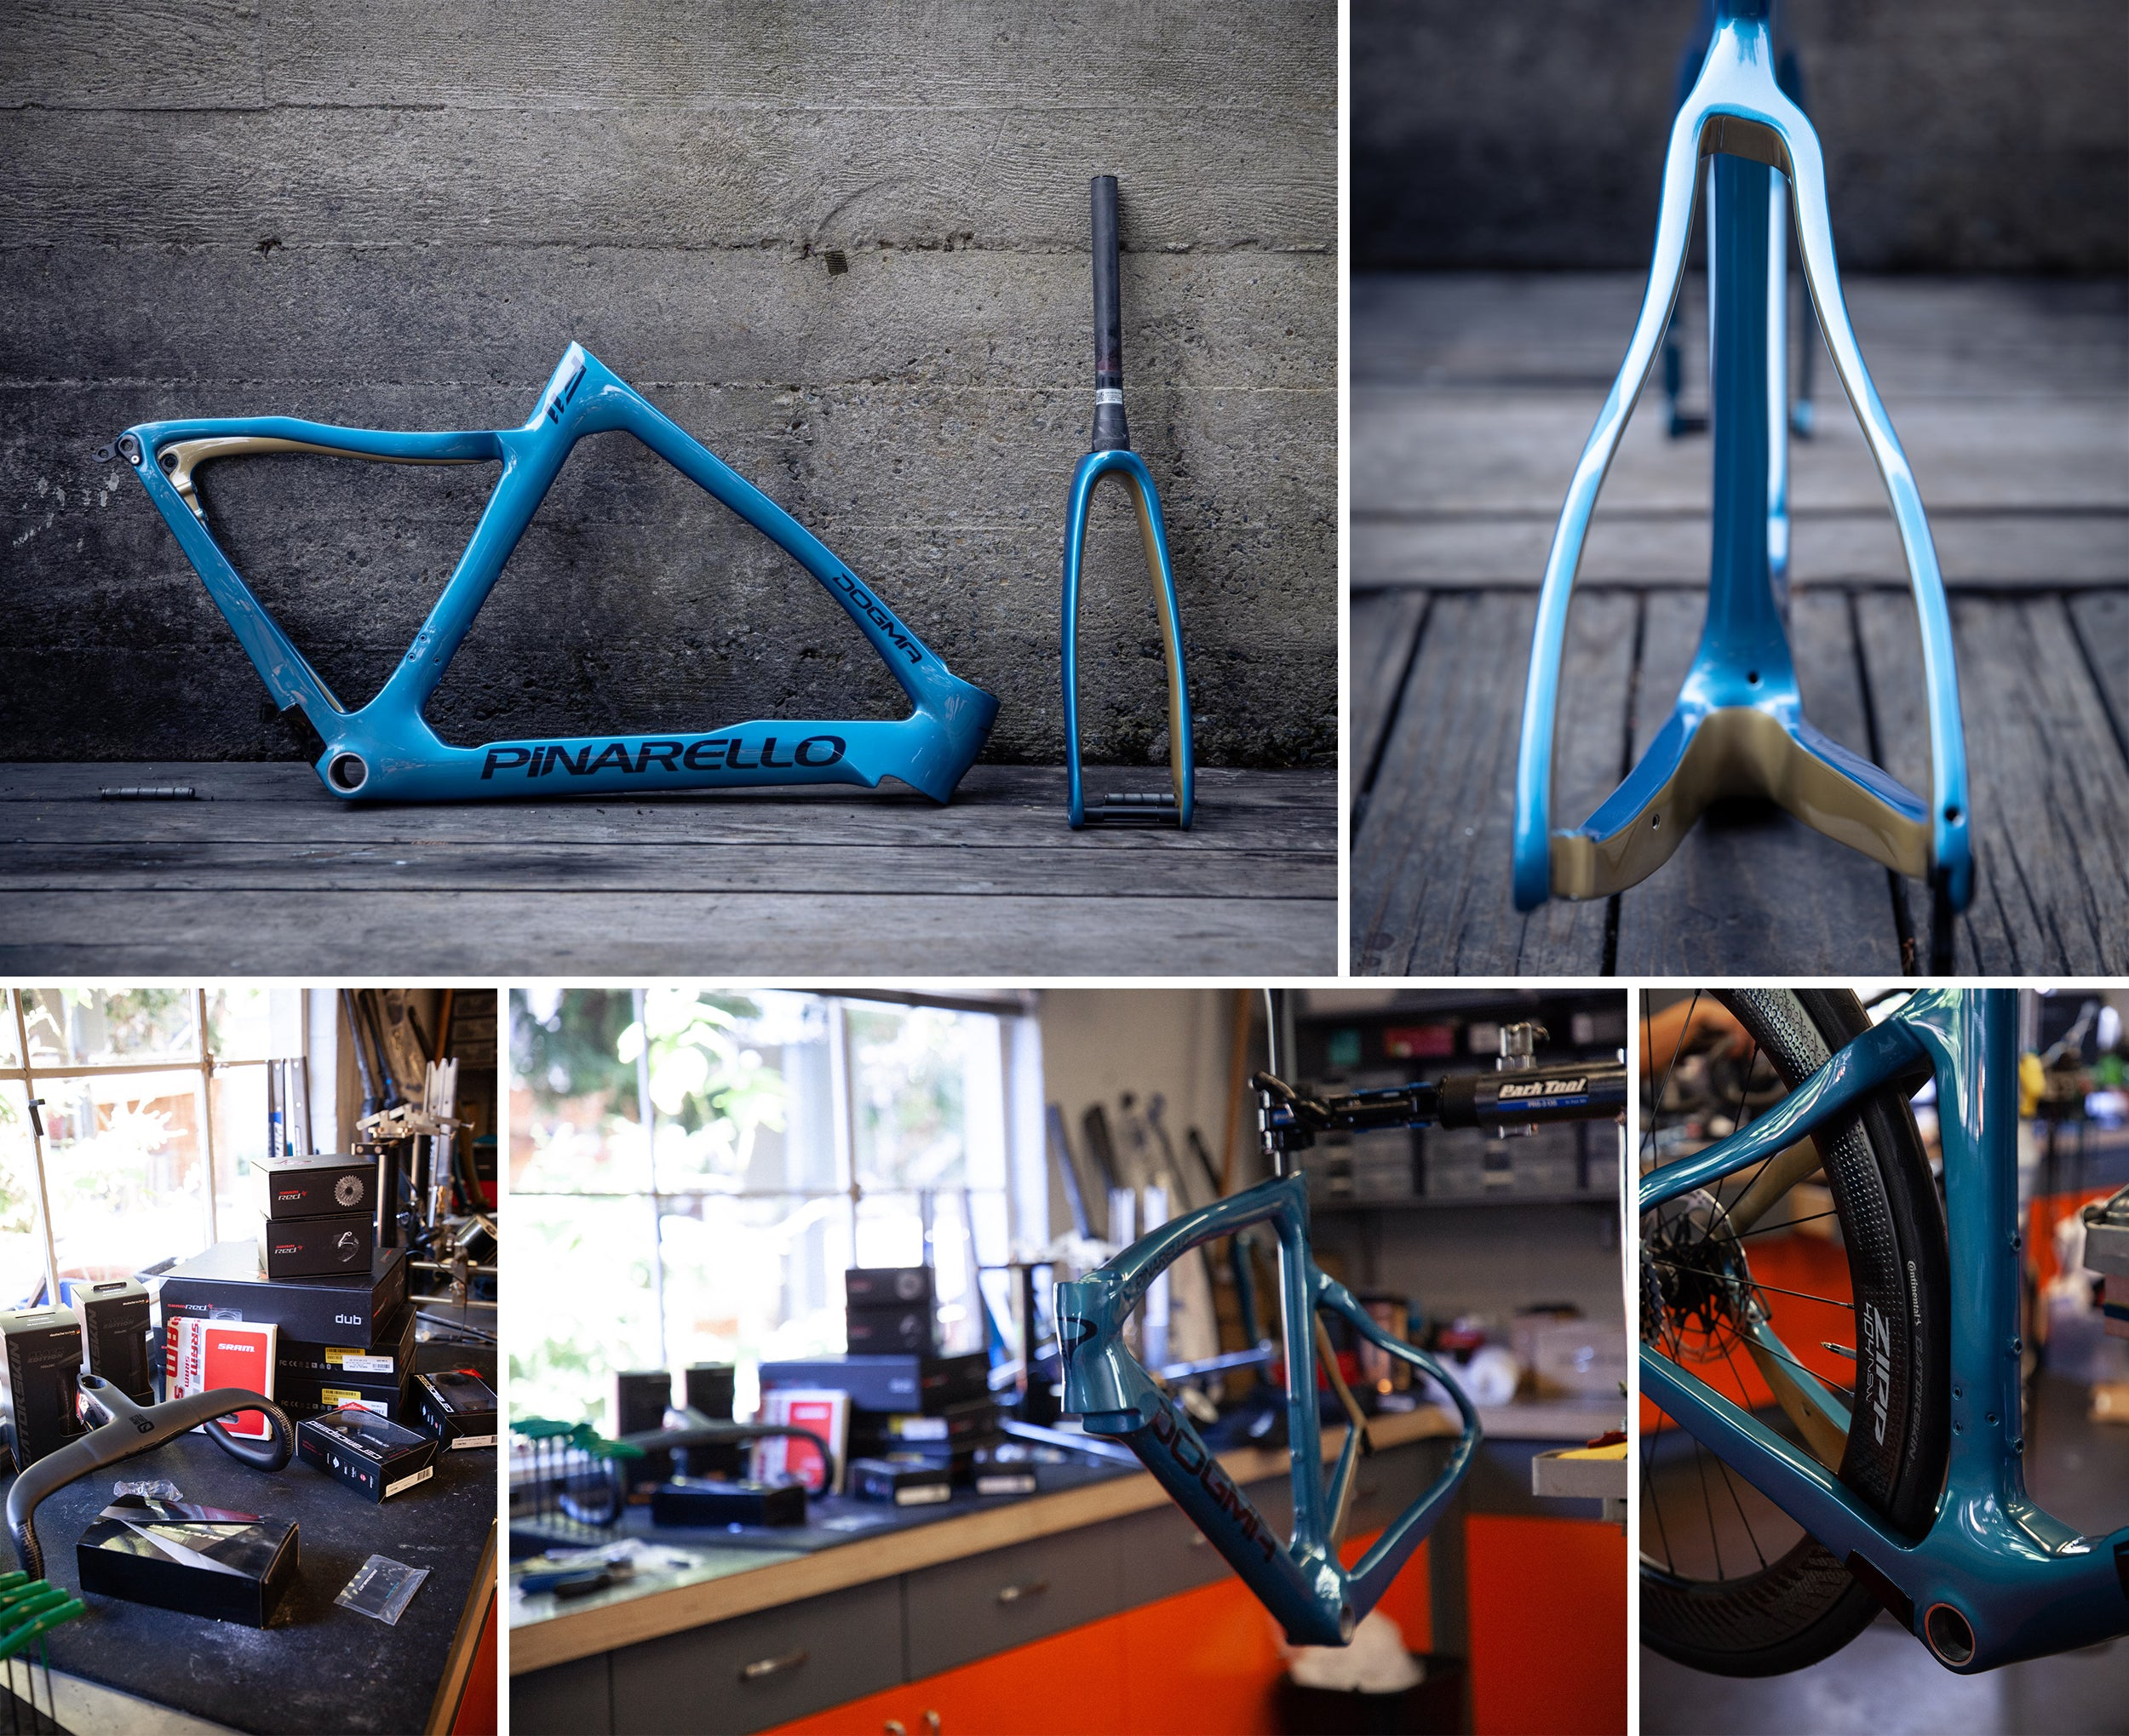 viking blue Pinarello F11 frame and paint